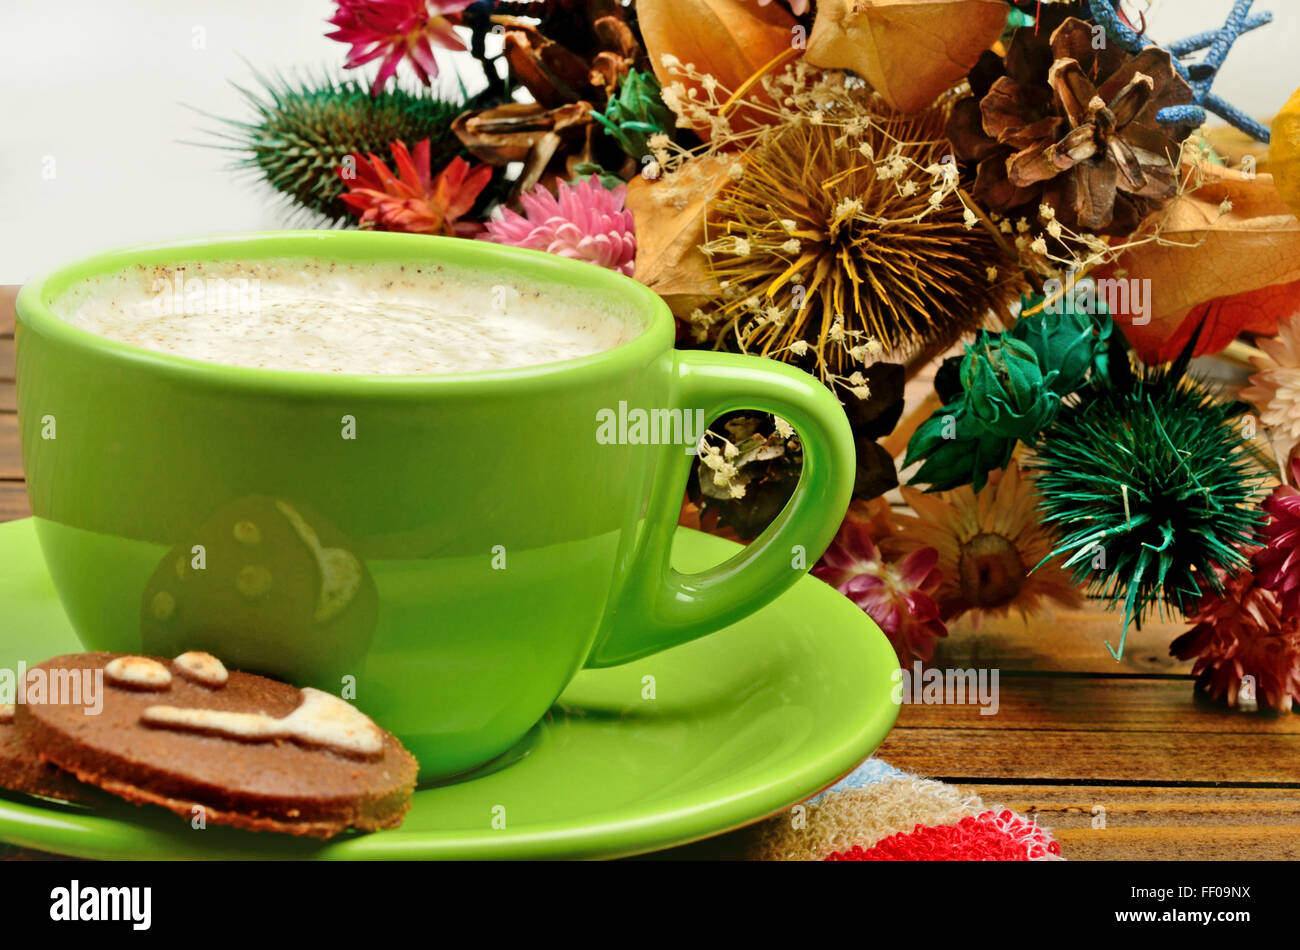 Cup of cappuccino and dried flower decoration on wooden table - Stock Image